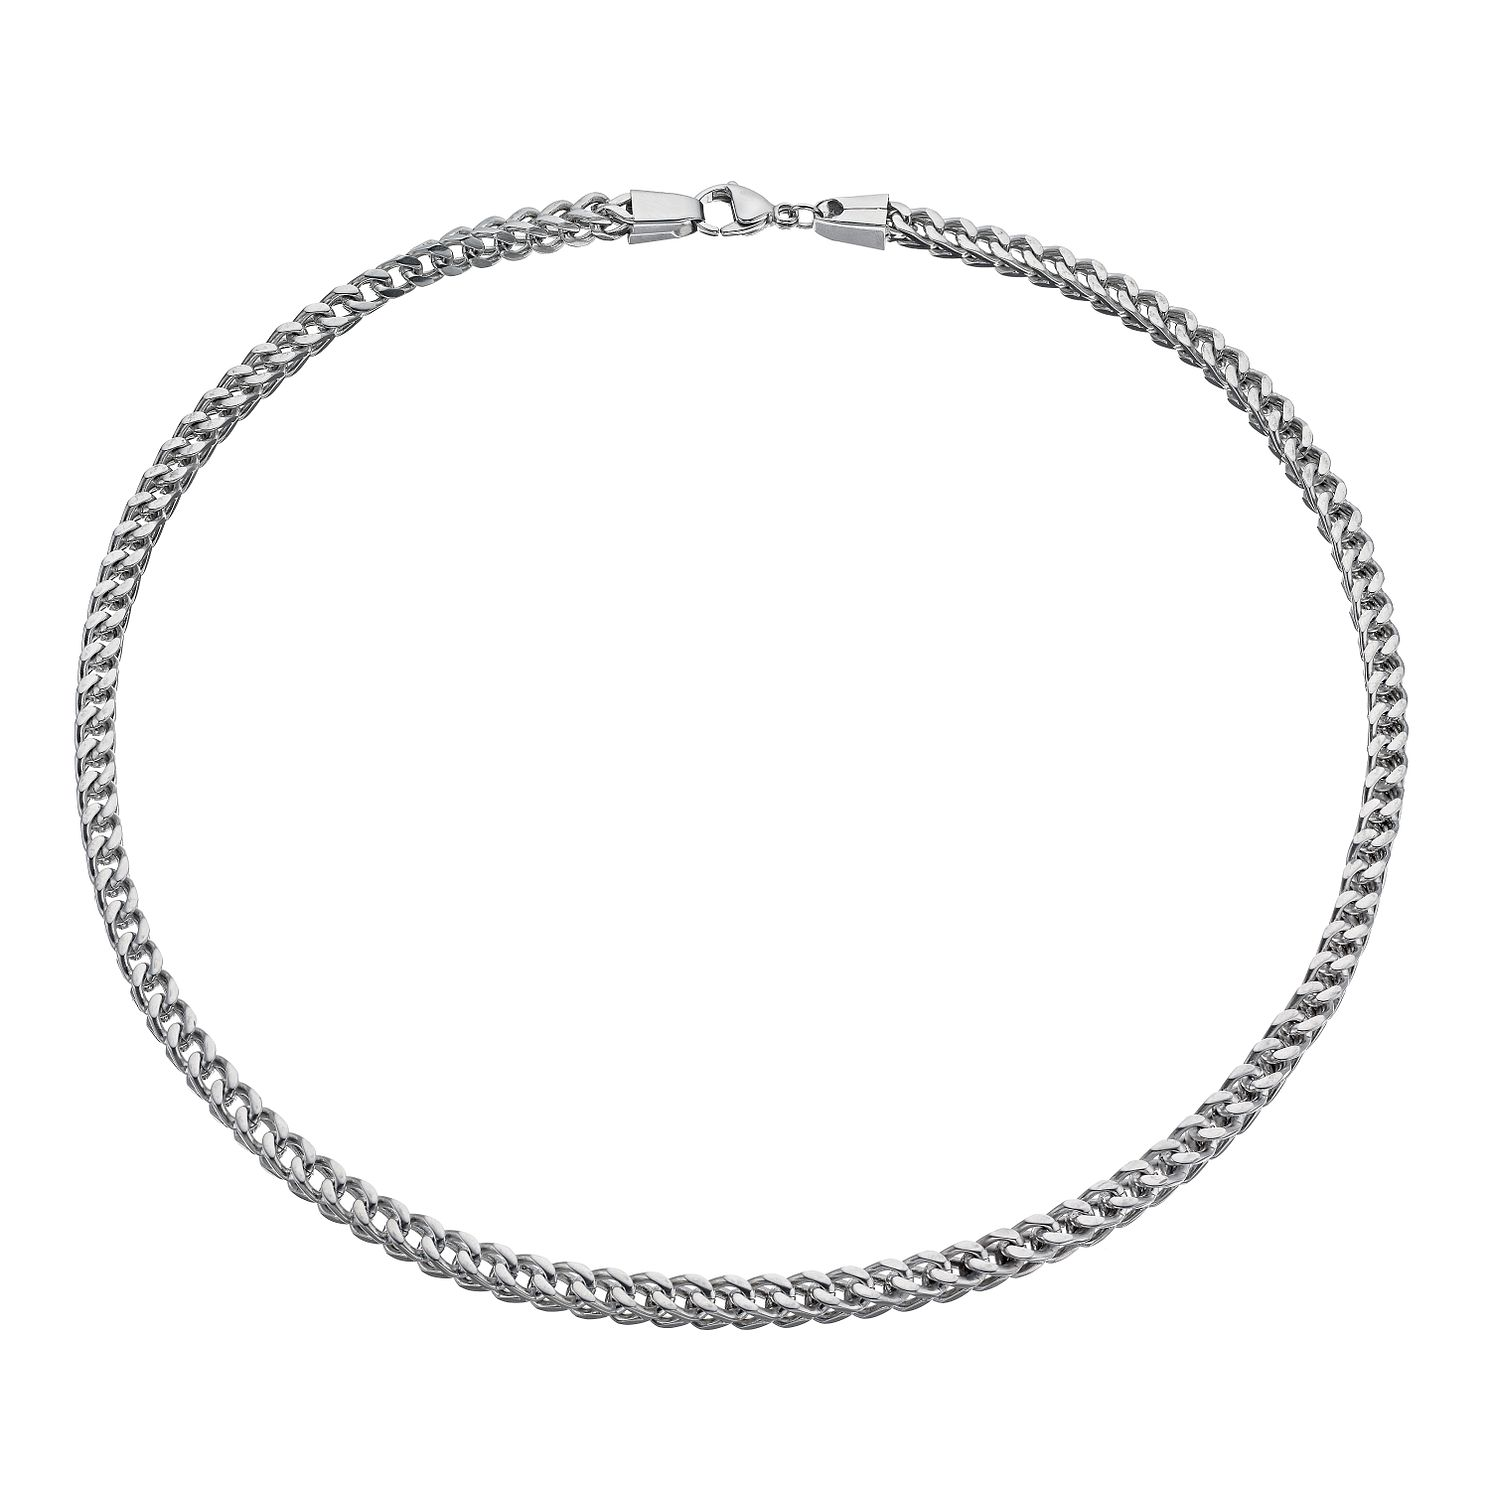 Stainless Steel 20 inches Chain Necklace - Product number 1335480